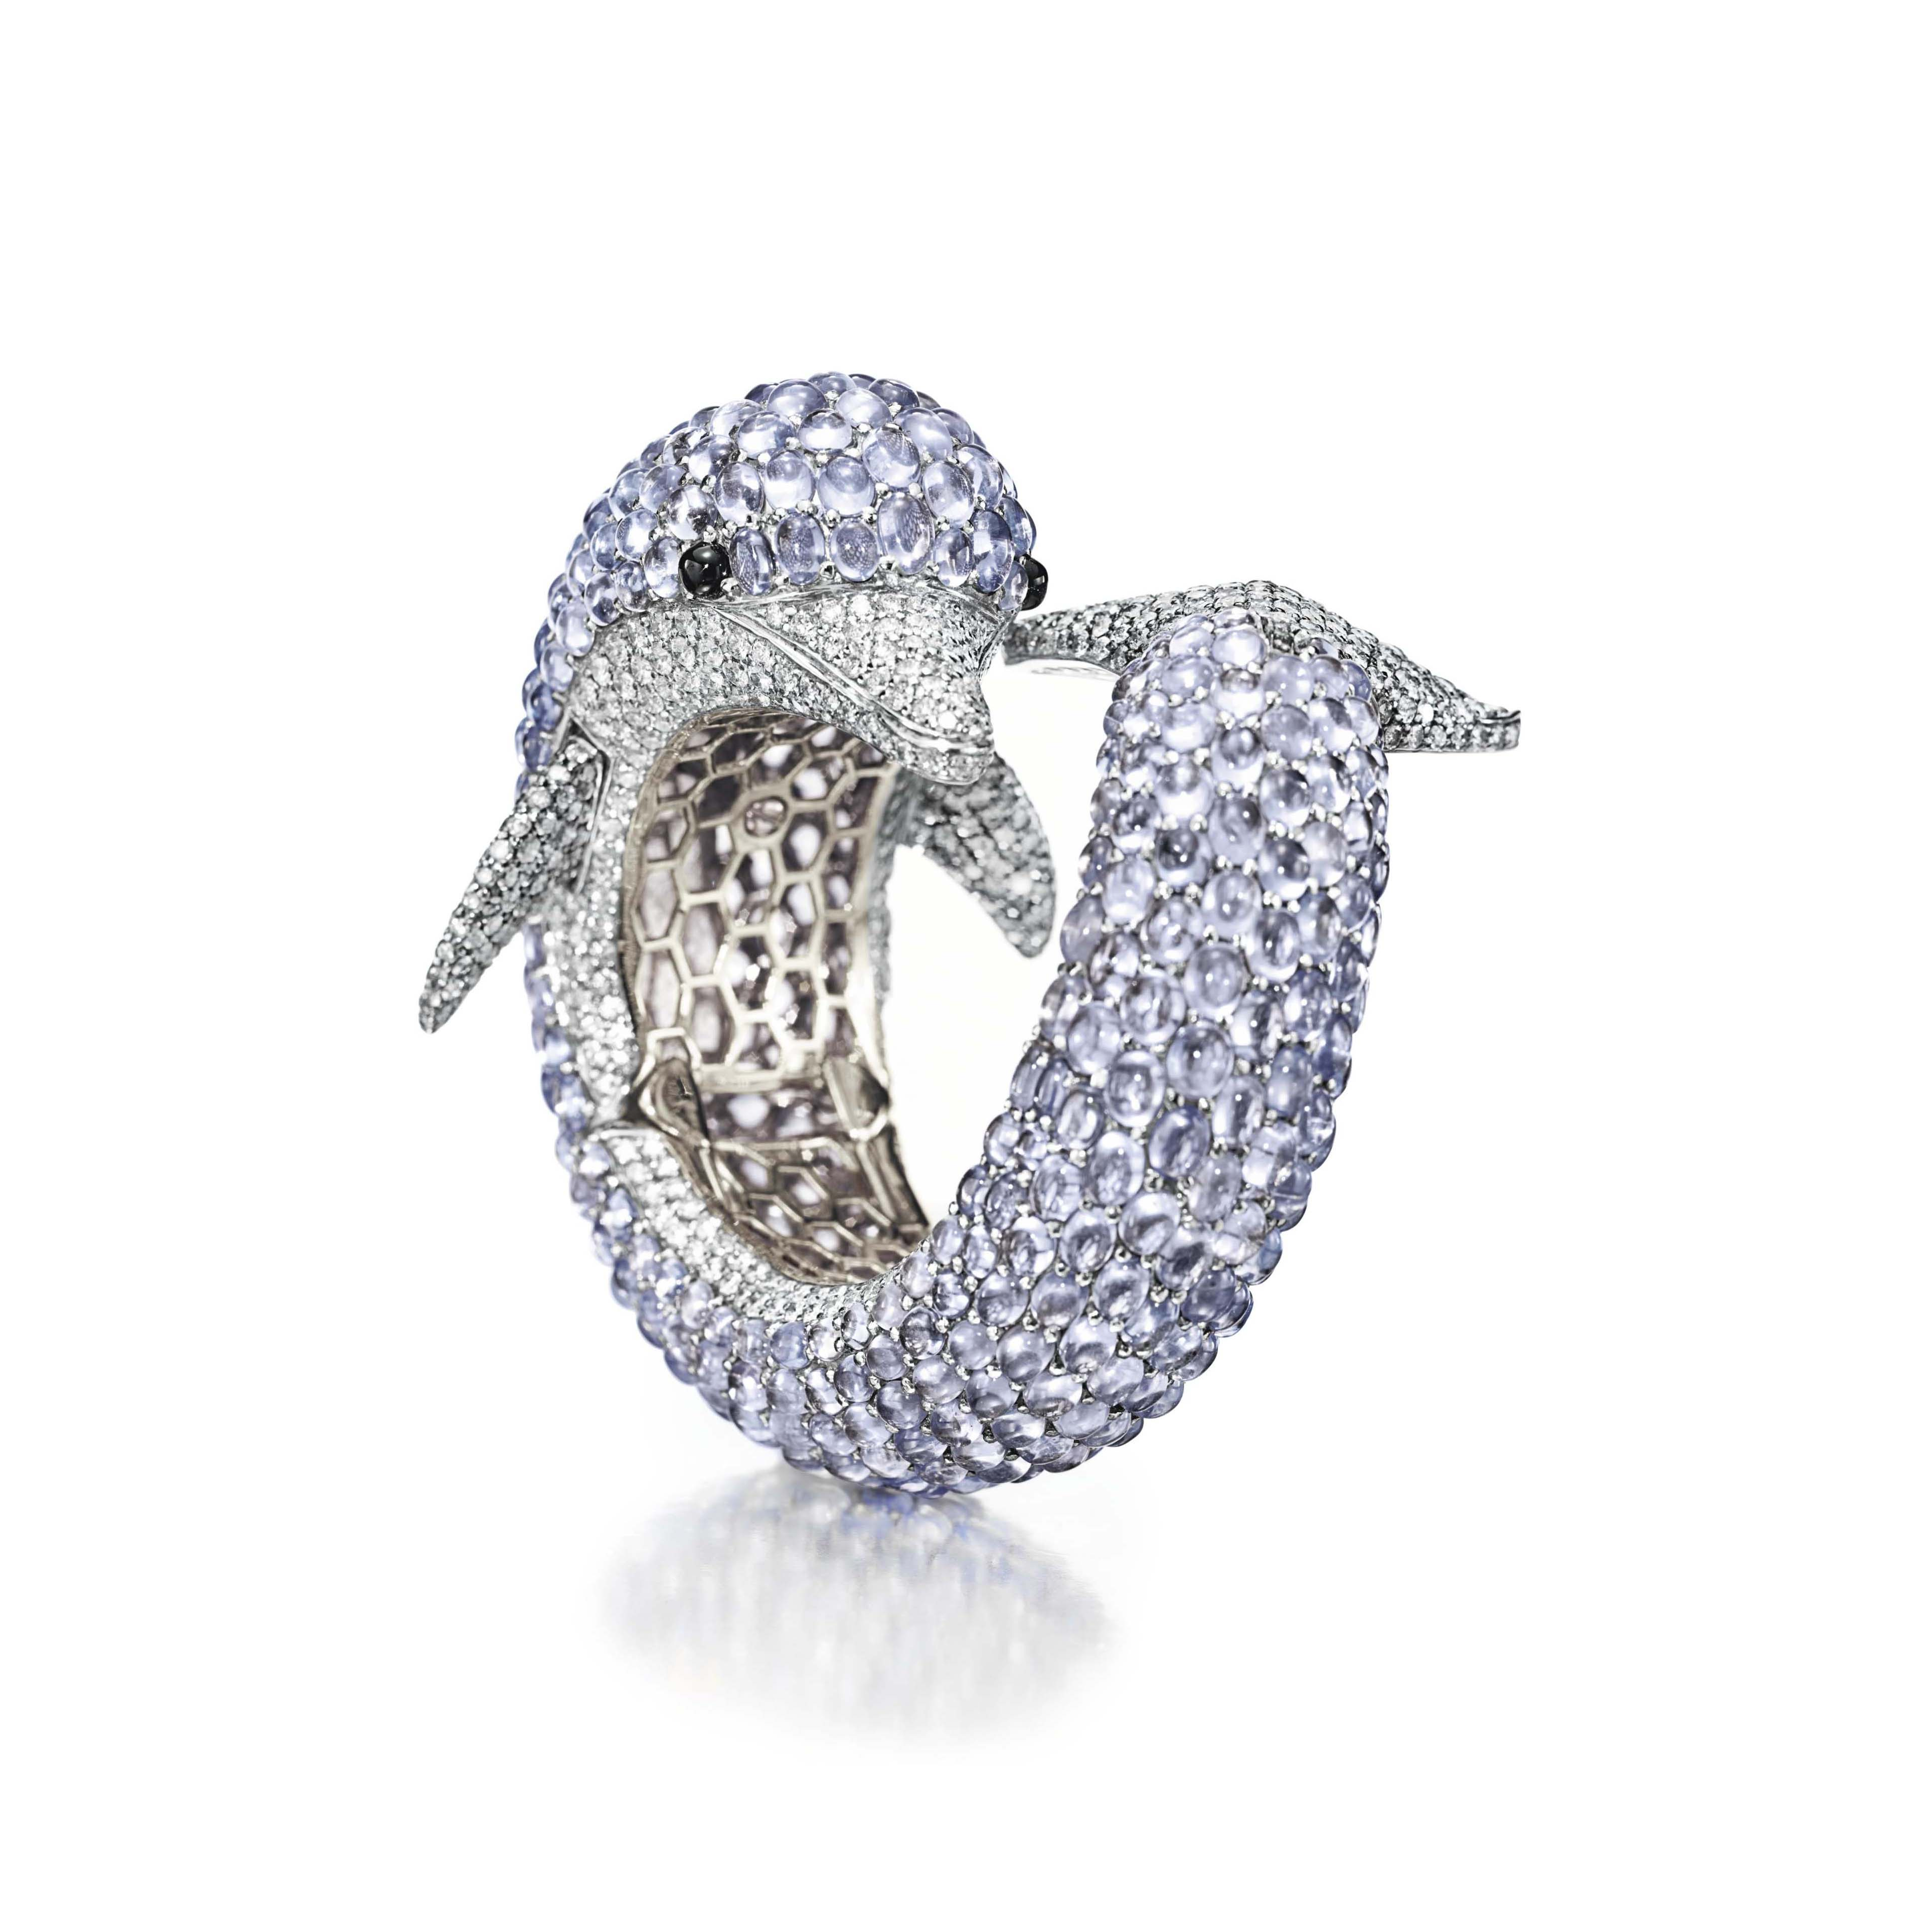 A SAPPHIRE AND DIAMOND BANGLE BRACELET, BY DE GRISOGONO